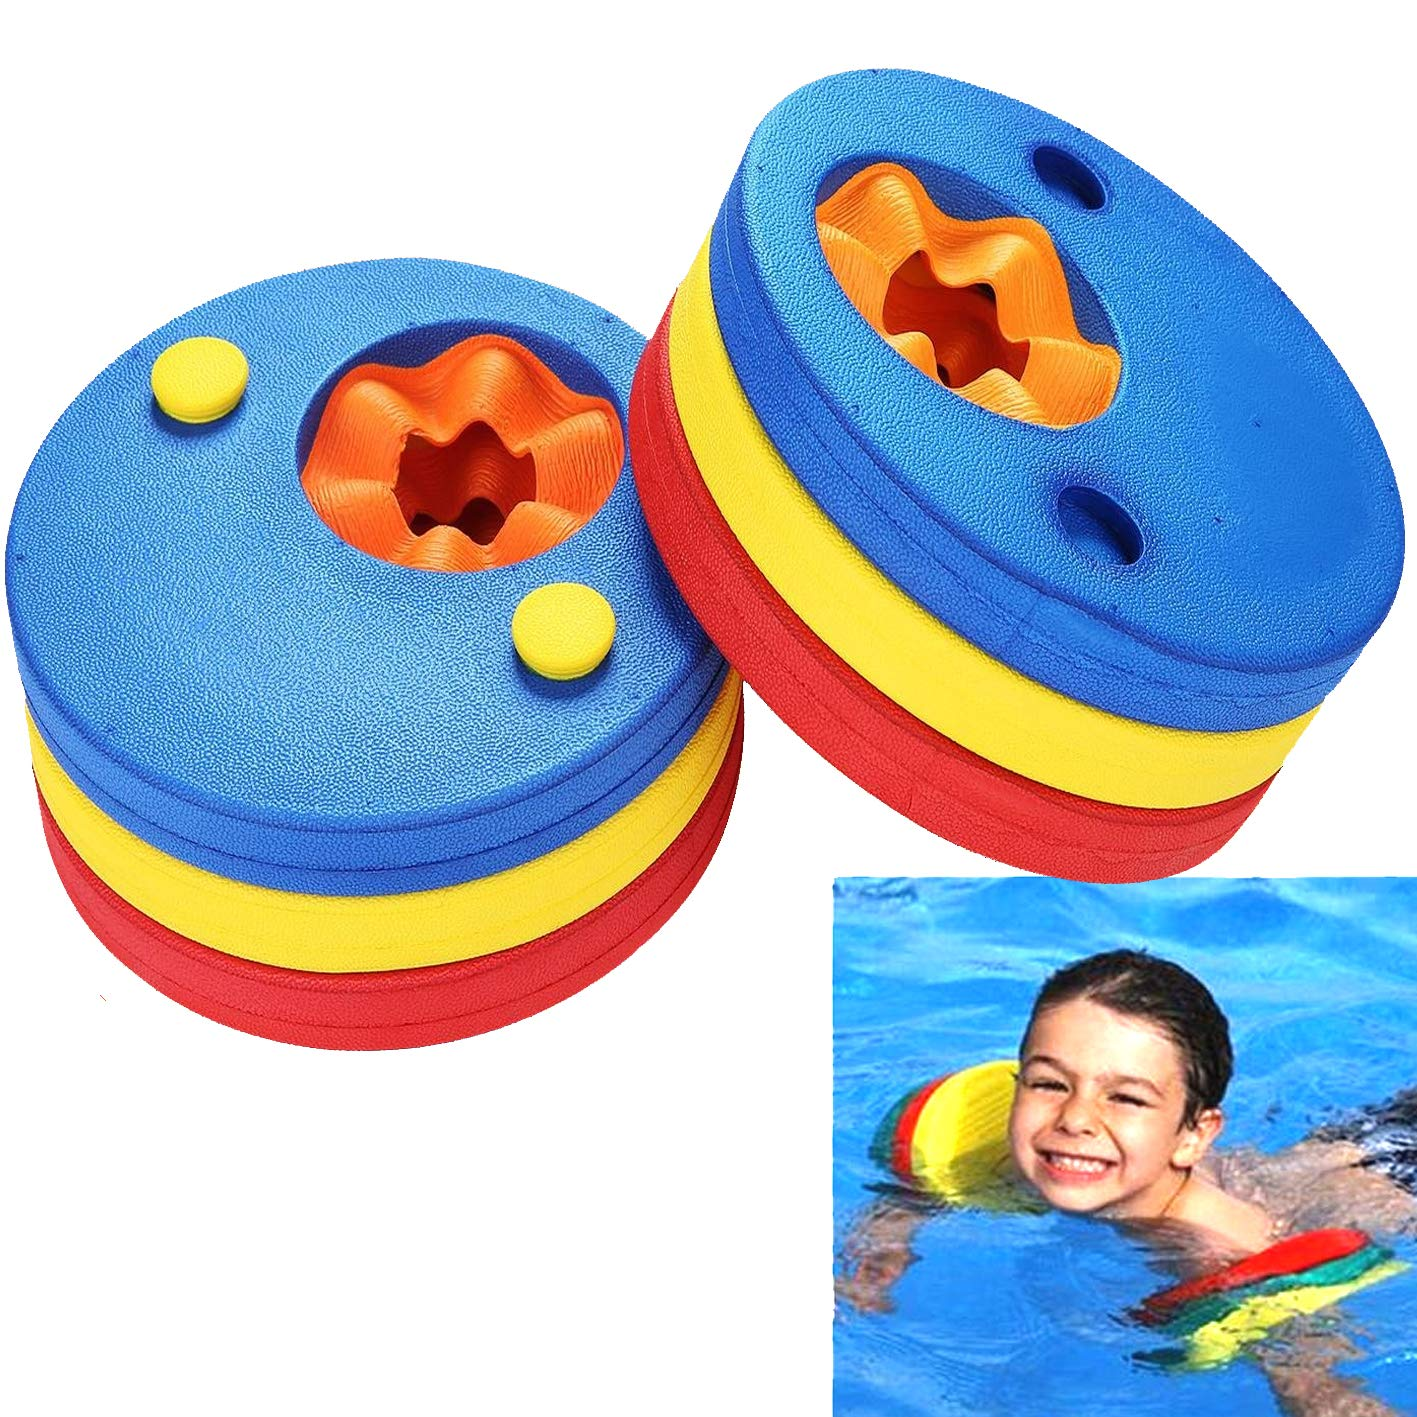 VERISA Float Aid Discs EVA Foam Swim Arm Band 6 pc Set for Kids Boys Girls Toddlers, Learn to Swim, Age 2 – 6, 25 kg max